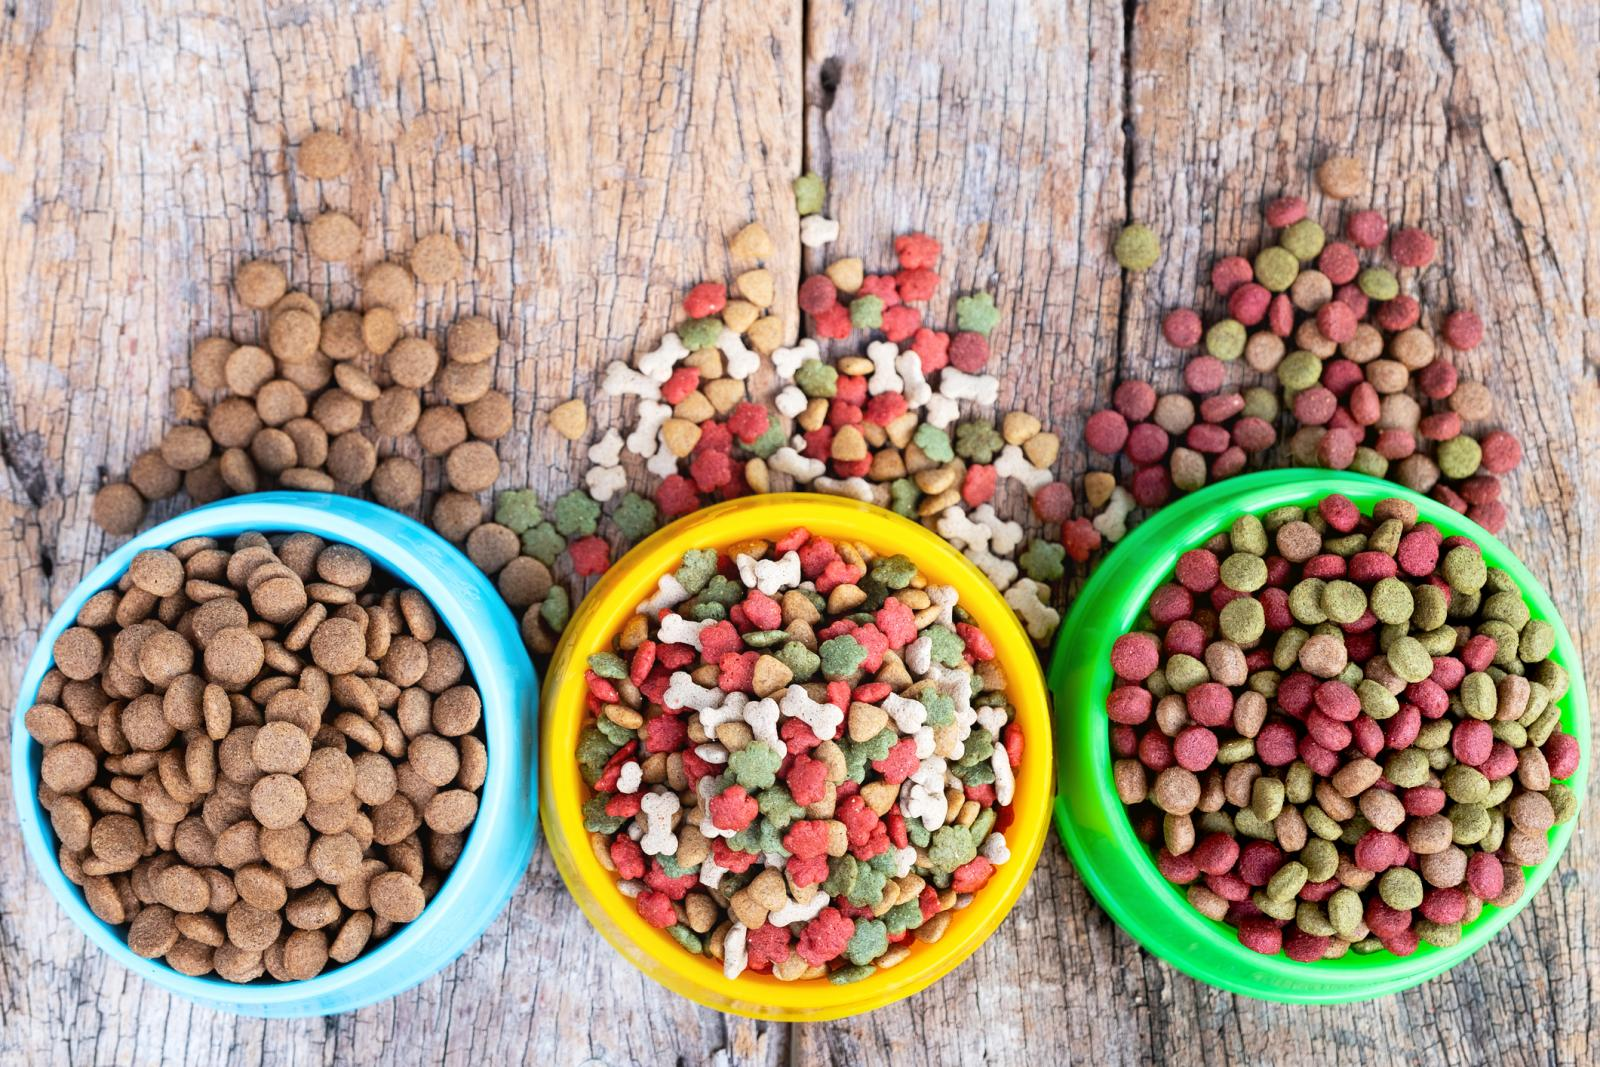 Pet Foods Market Booming Segments; Investors Seeking Astonishing Growth: Diamond Pet Foods, Unicharm, Mars Petcare, Nestle Purina Petcare